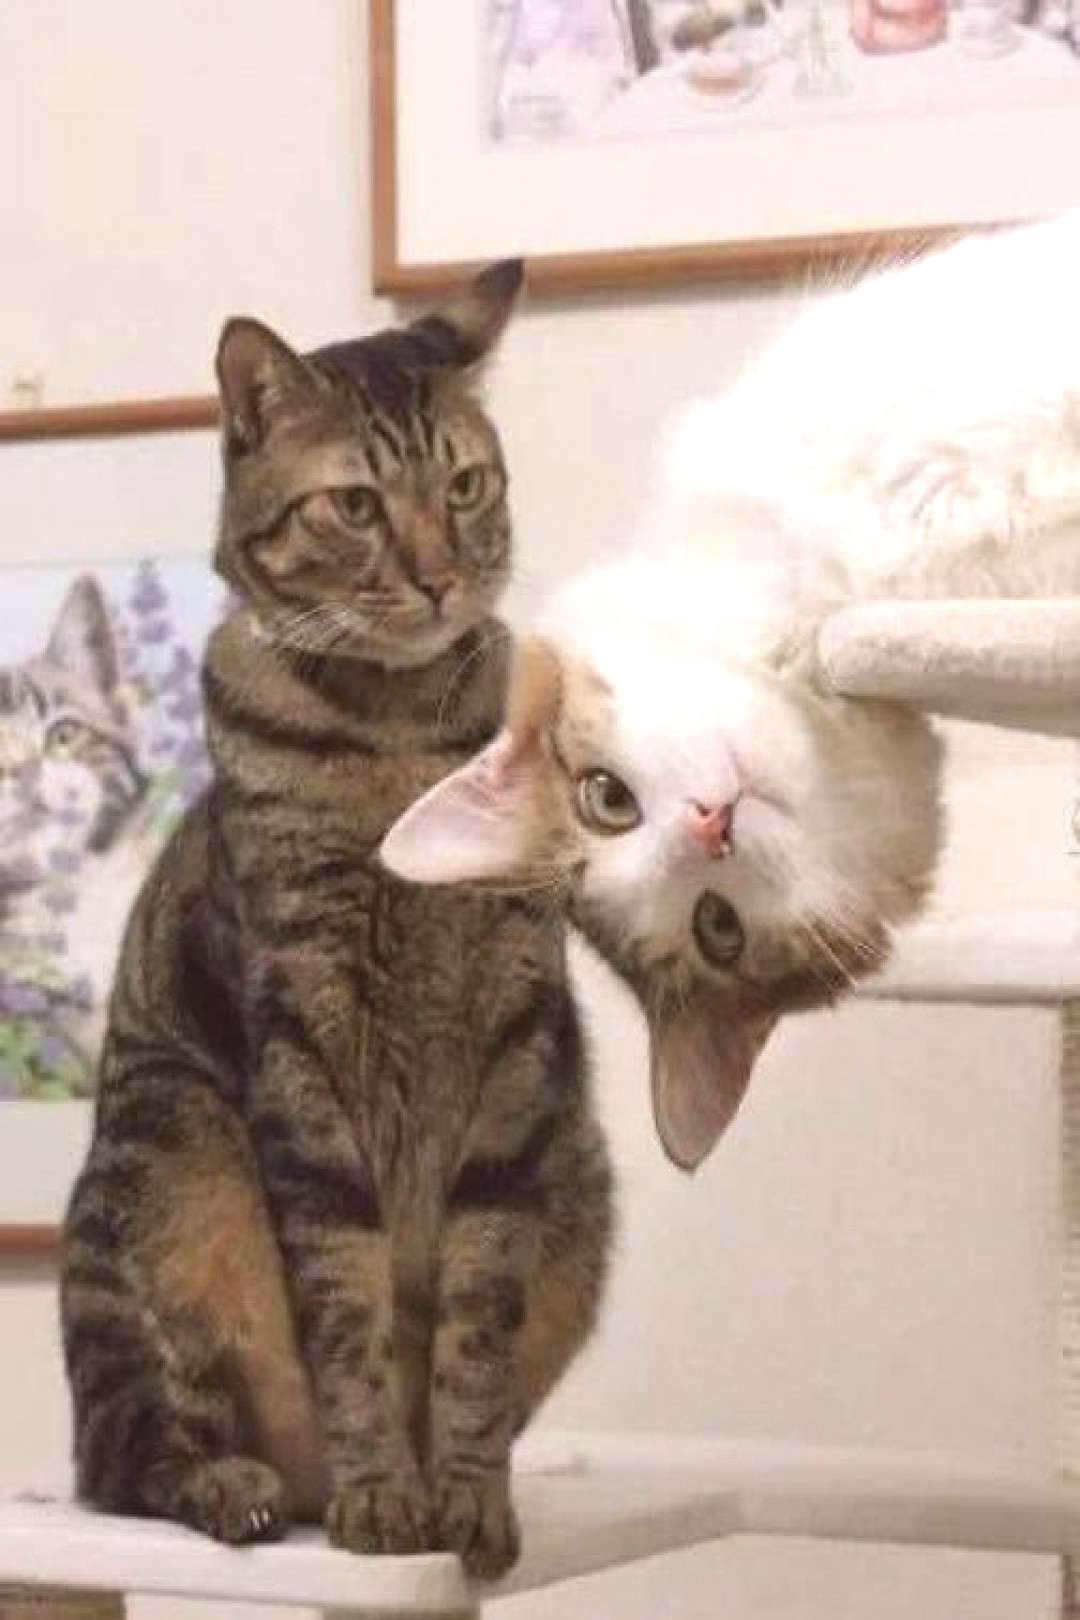 19 Perfectly Timed Pictures of Cats